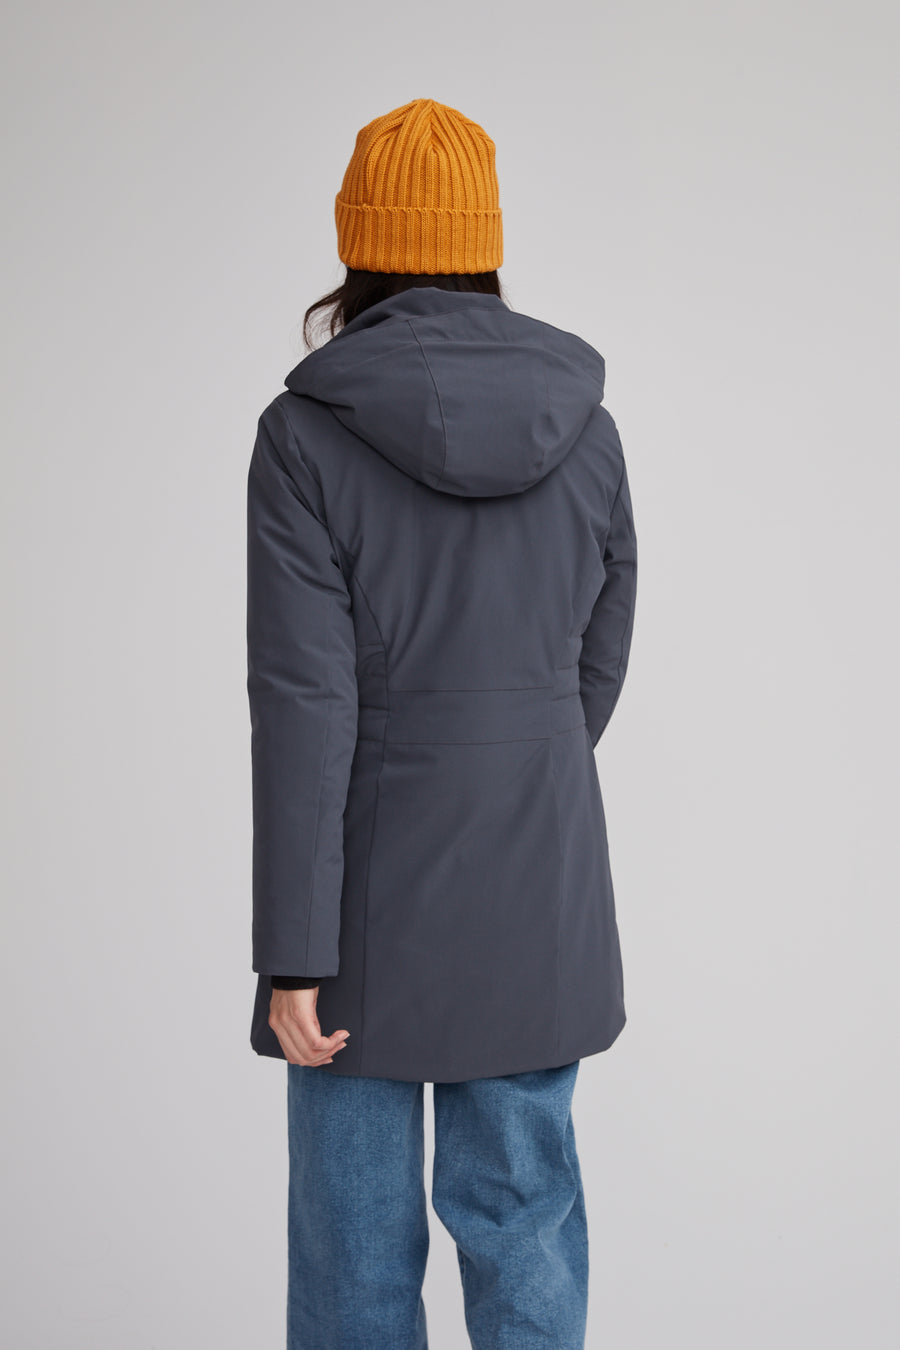 Manteau d'hiver MONACO II RECYCLÉ - AK10011R || RECYCLED MONACO winter coat - AK10011R